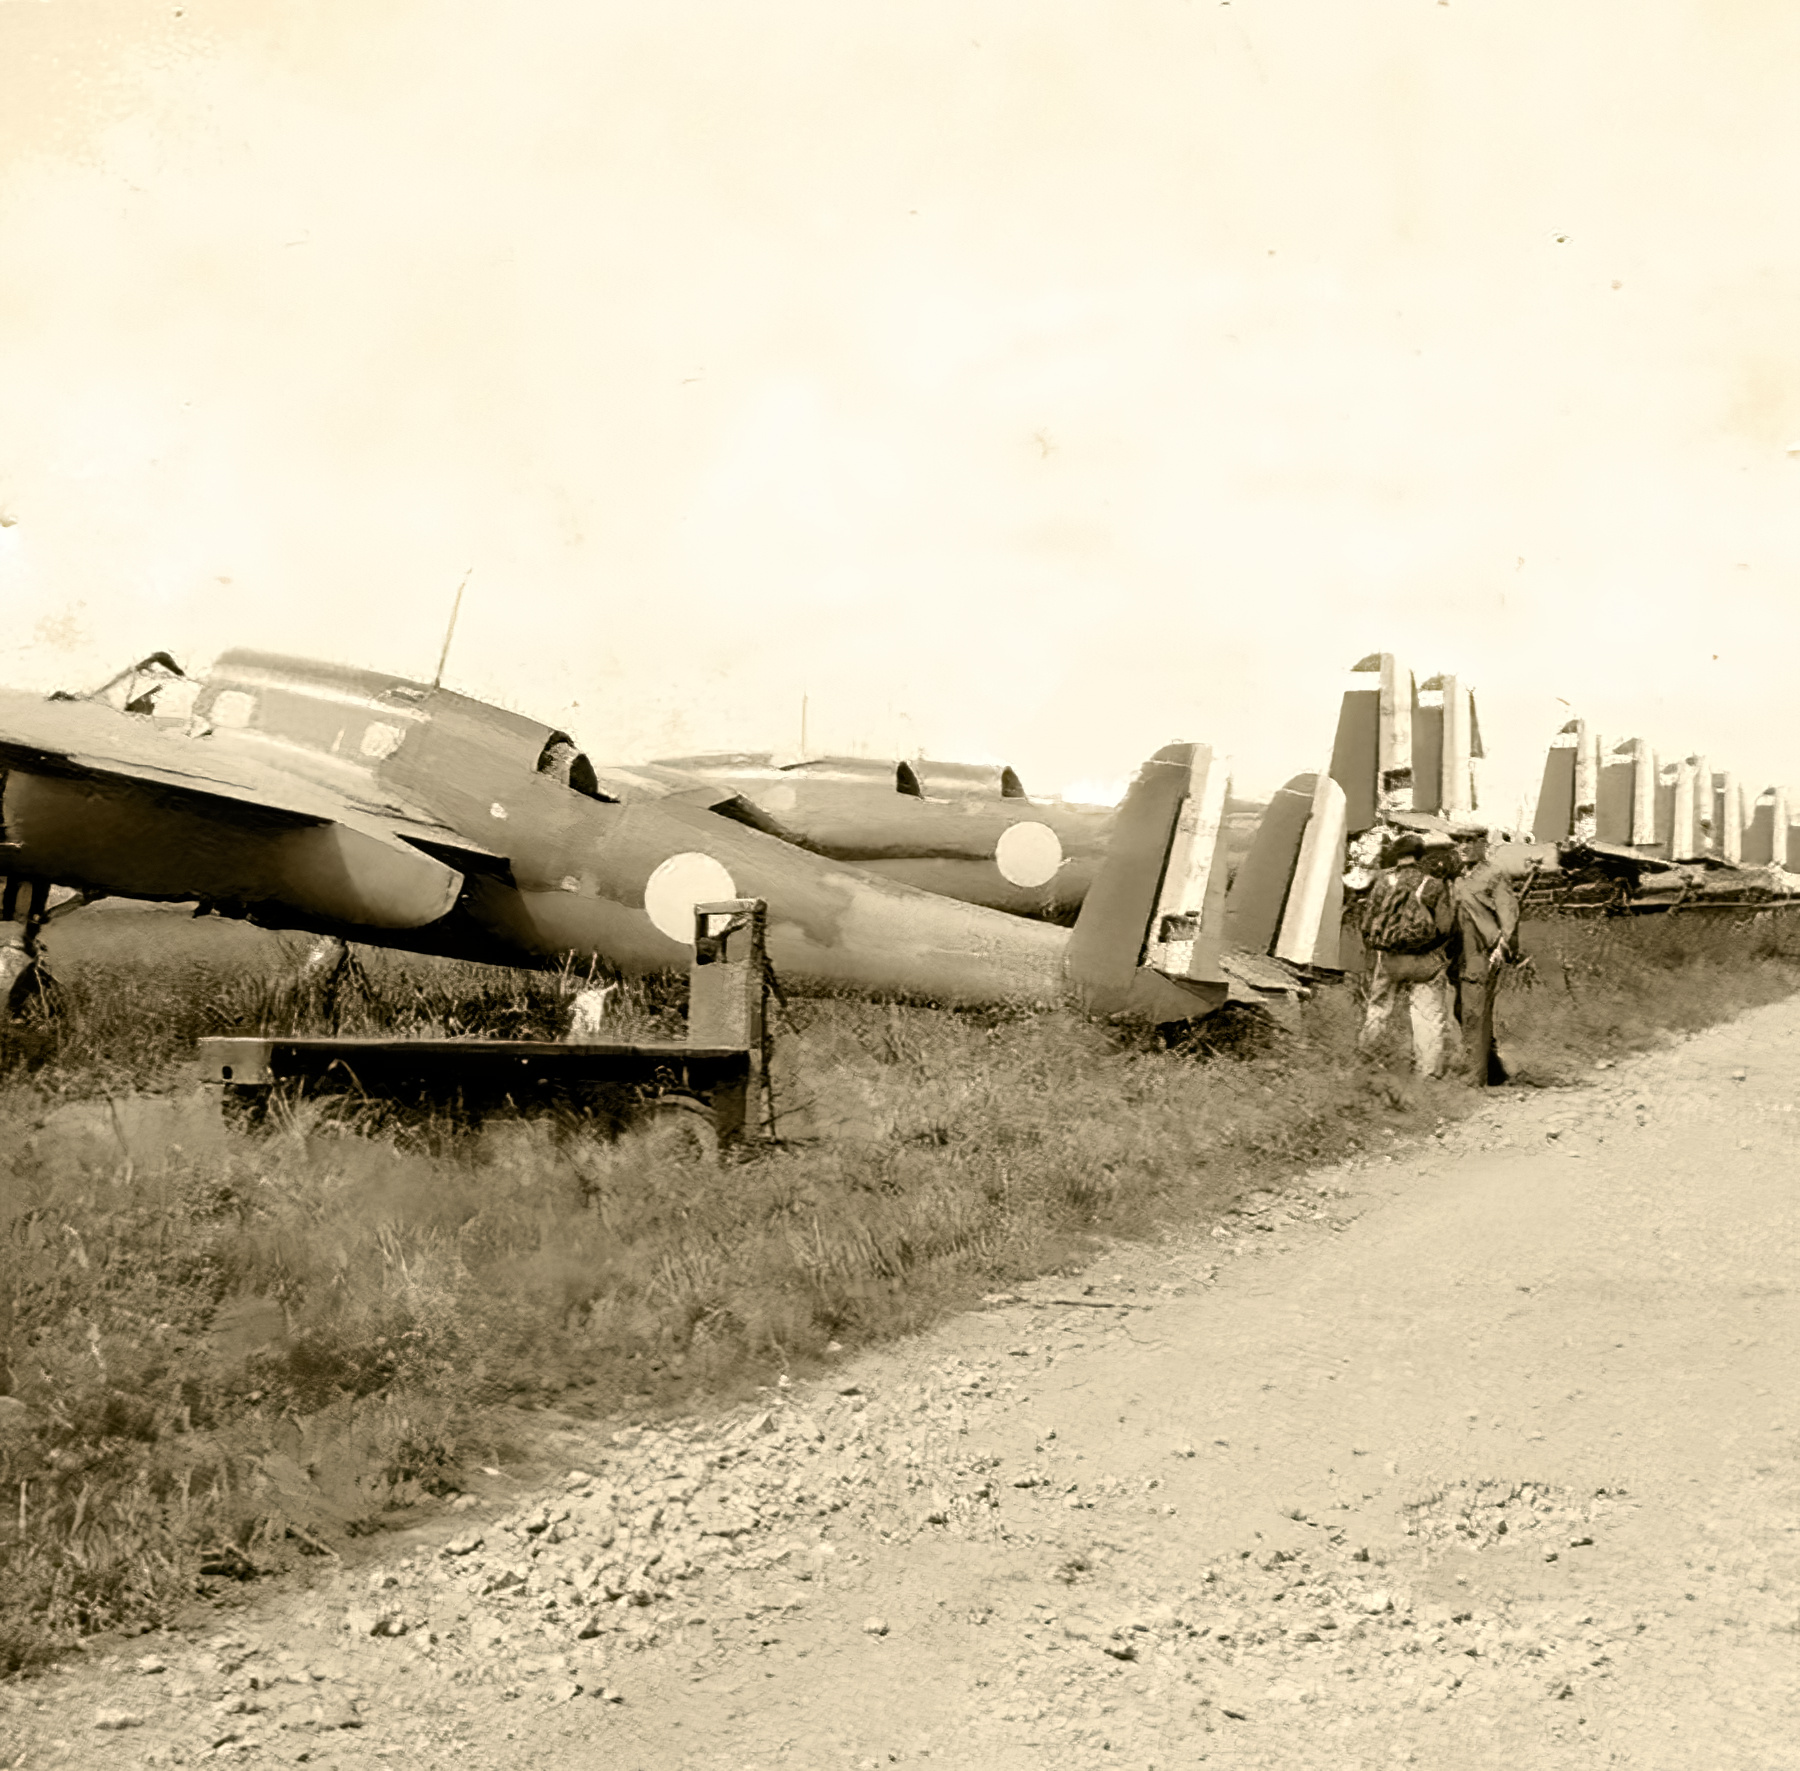 French Airforce Breguet Bre 690 a row of abandoned aircraft sit after the fall of France June 1940 01